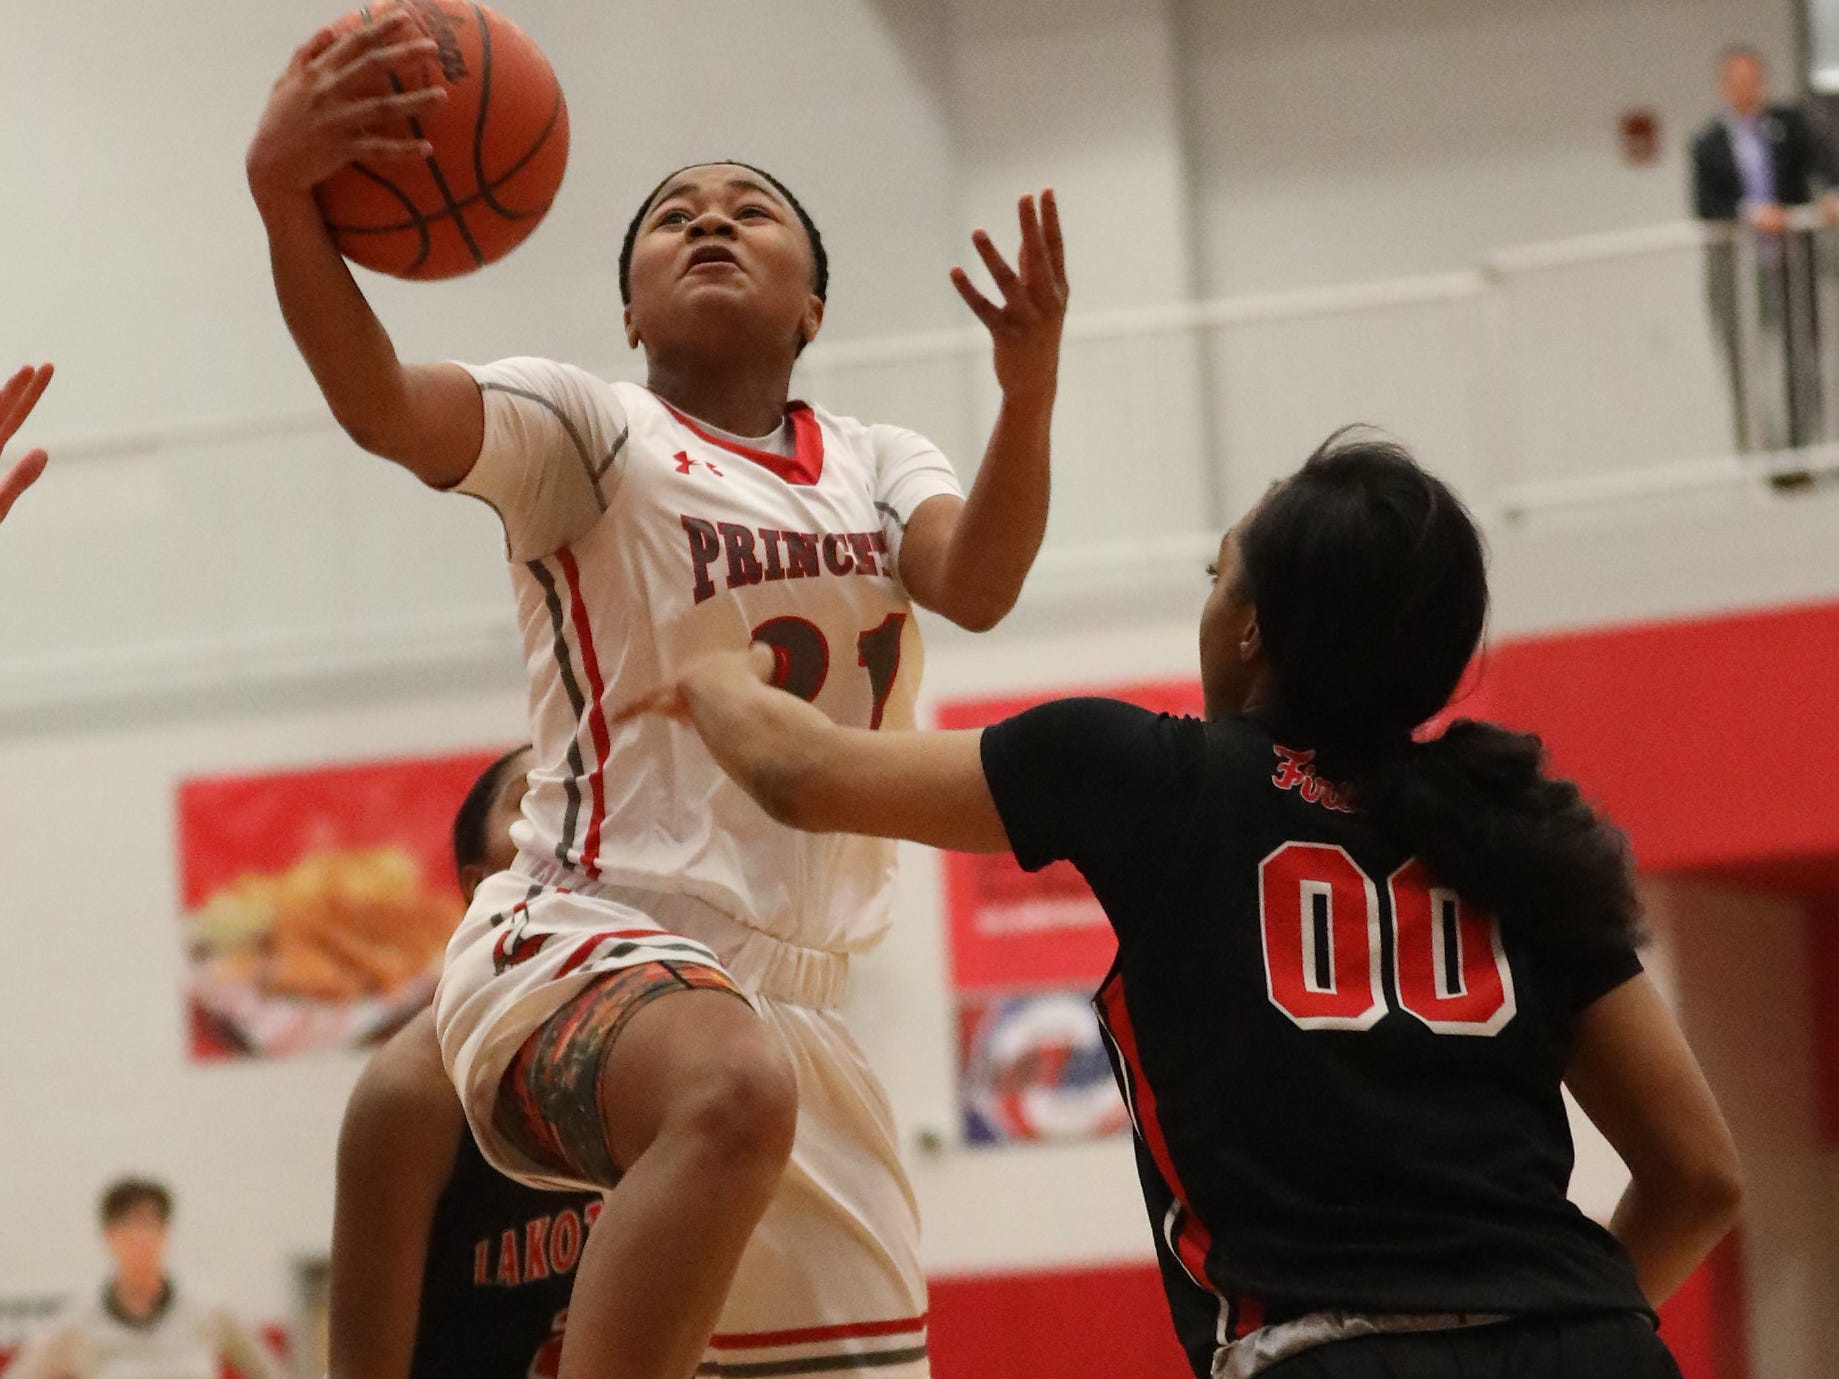 Princeton guard Willow White (21) drives to the basket during the Vikings' basketball game against Lakota West , Wednesday, Jan.16, 2019.